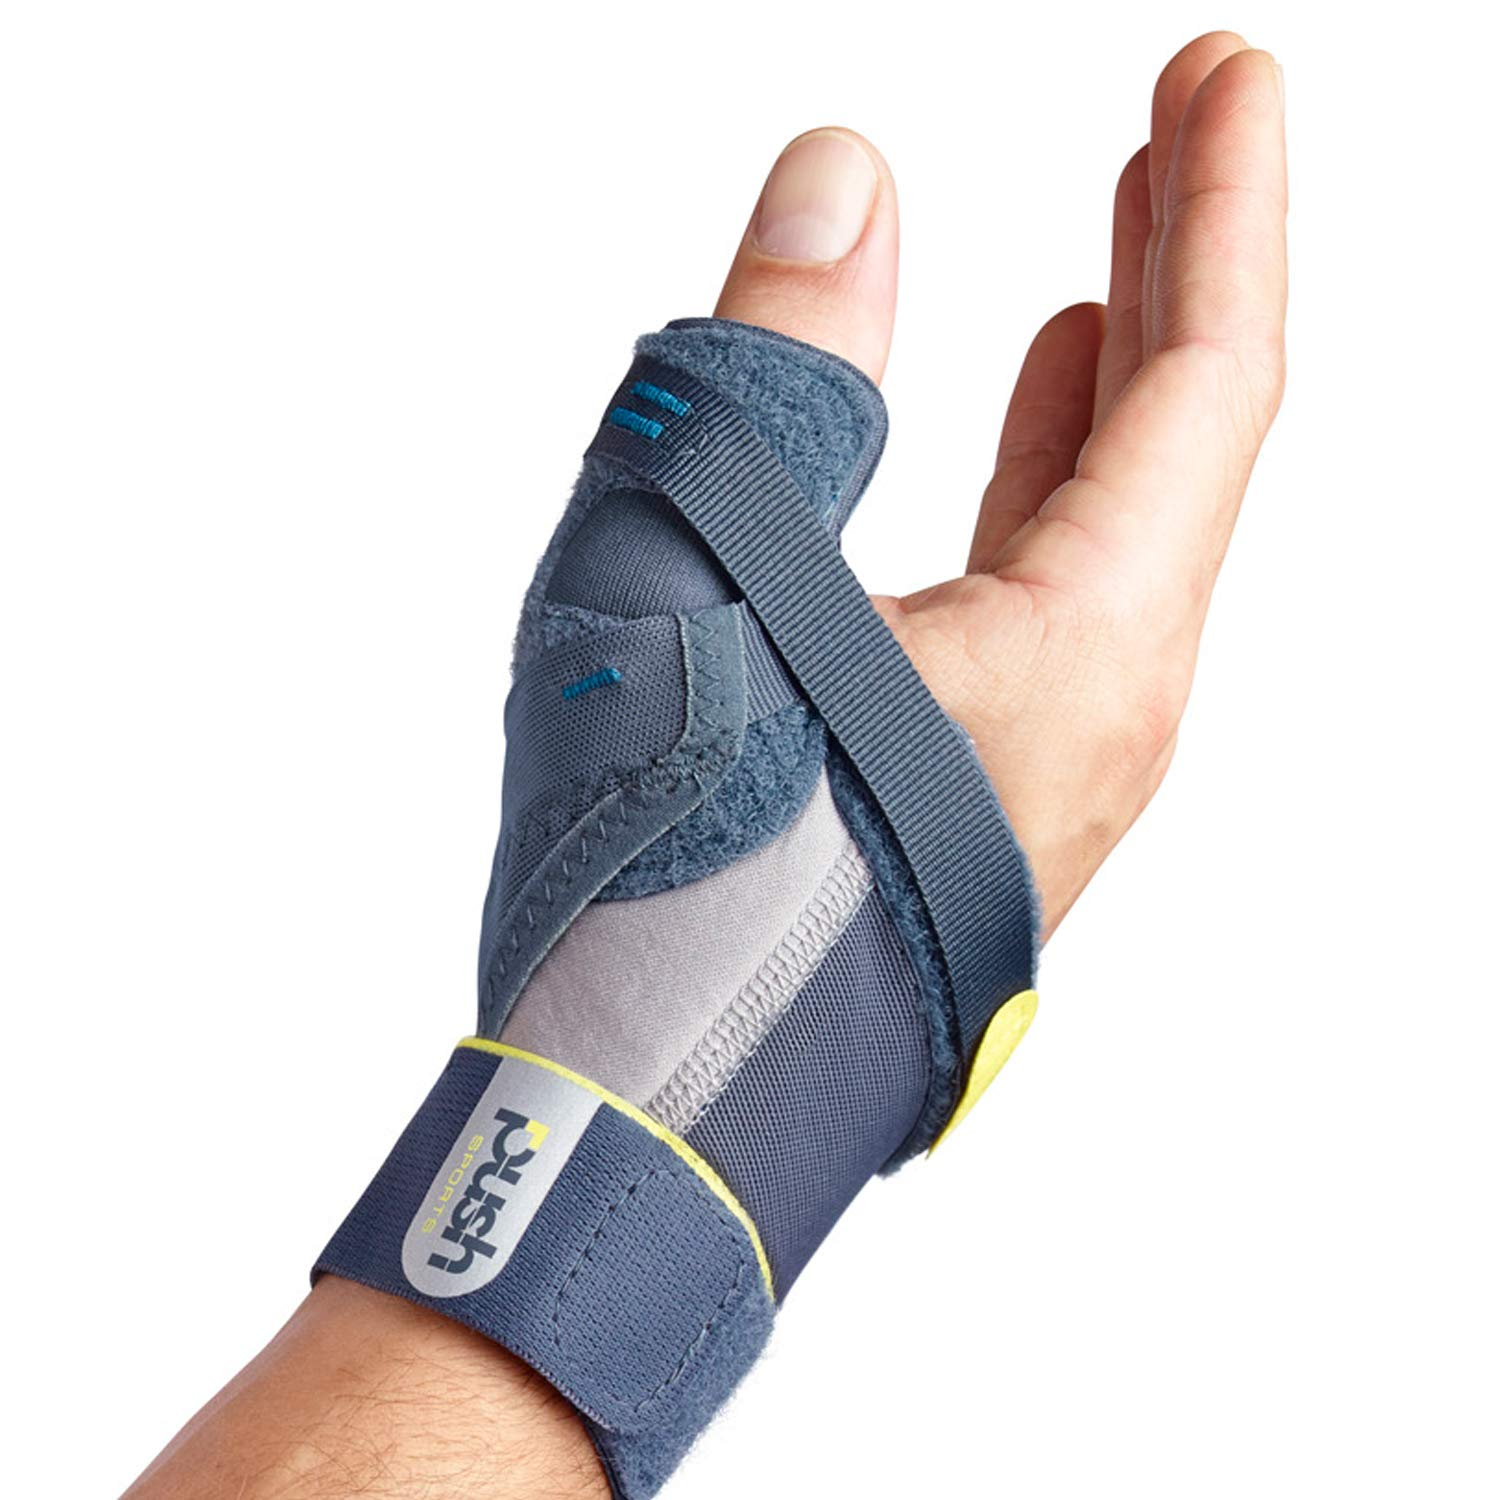 Push Sports Thumb Brace - Stabilizes Skier's Thumb, Optimizes Function (Left Large) by Push Sports